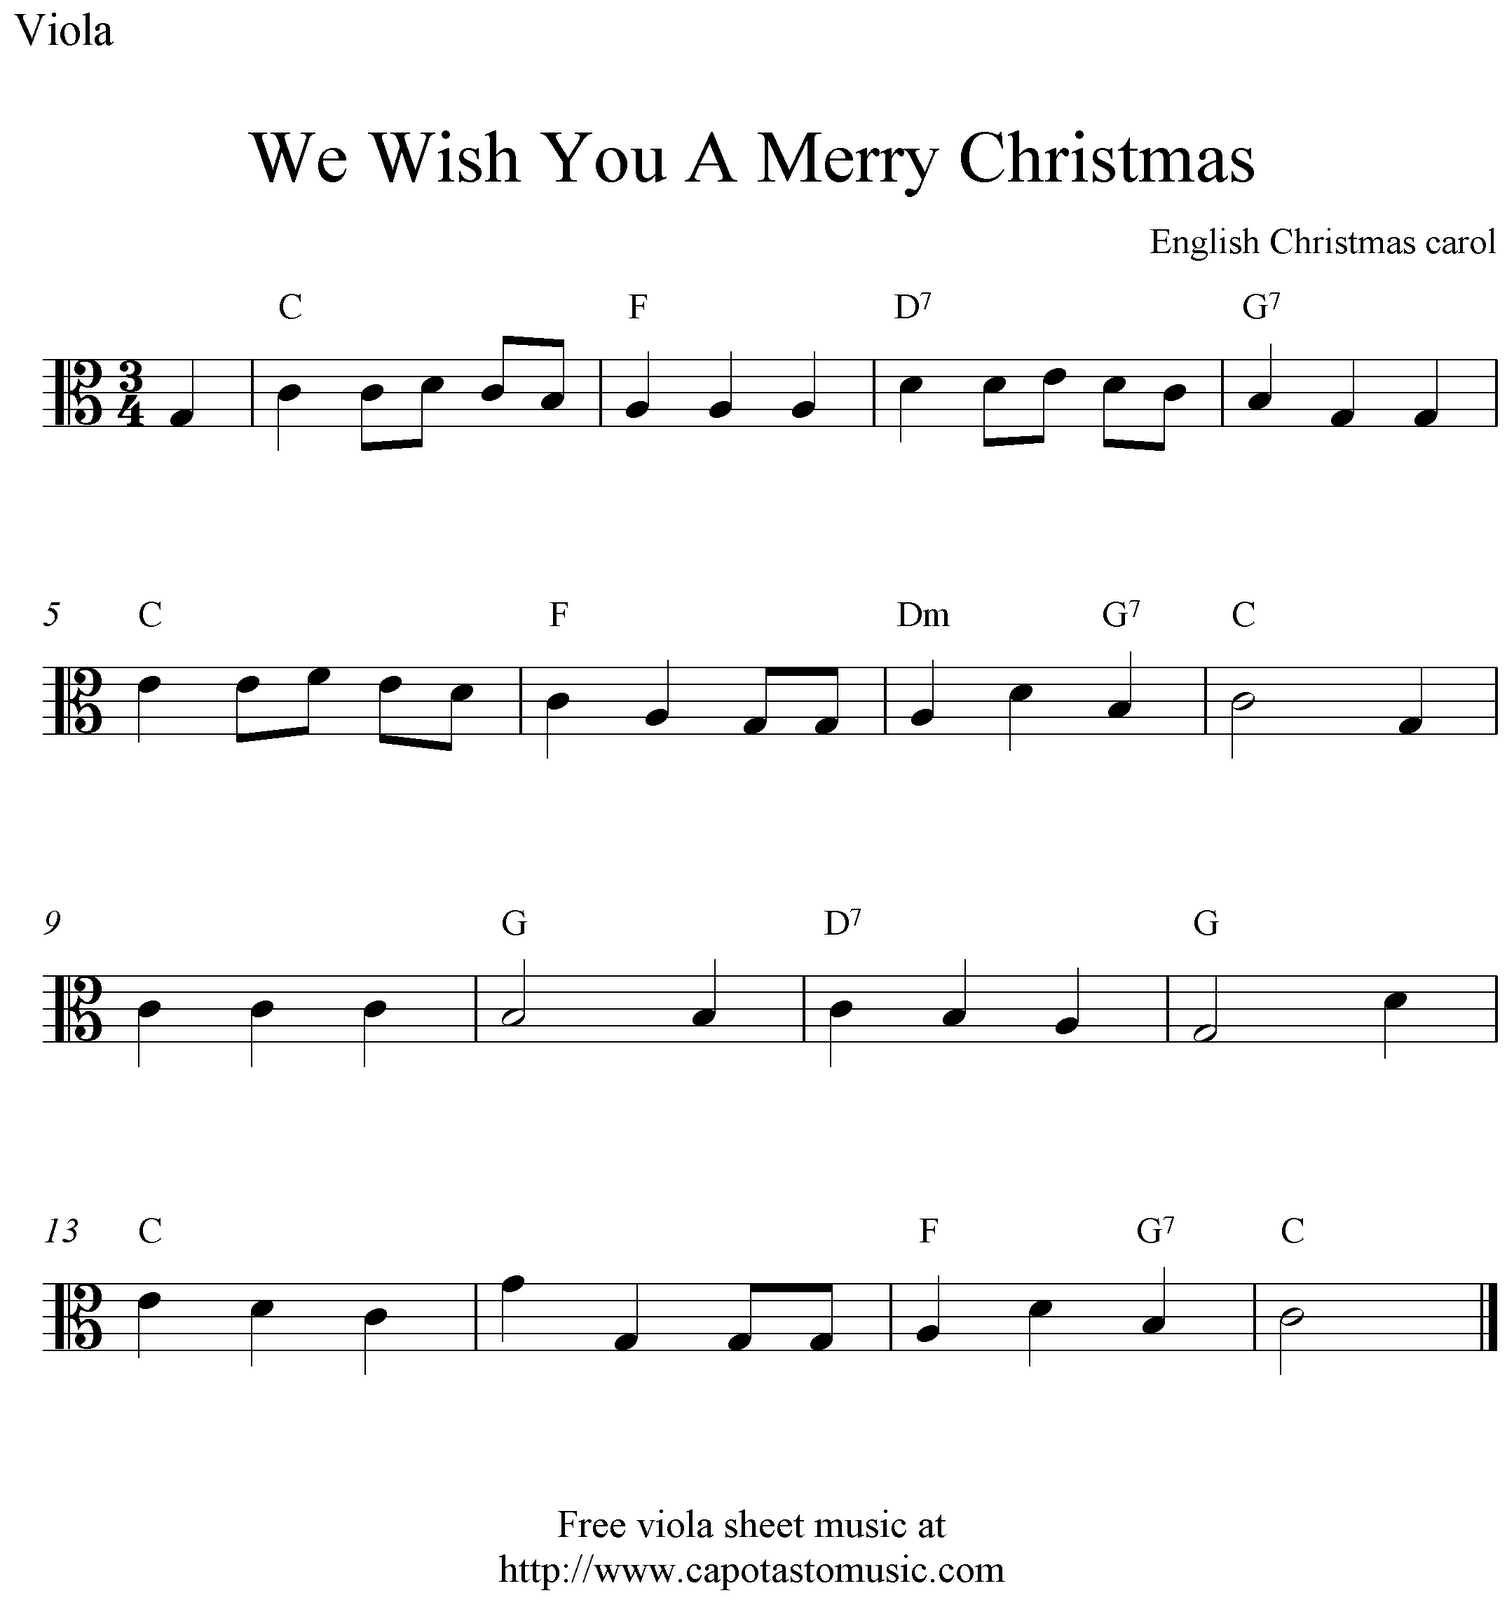 Viola Sheet Music For Christmas | Free Easy Christmas Viola Sheet - Viola Sheet Music Free Printable